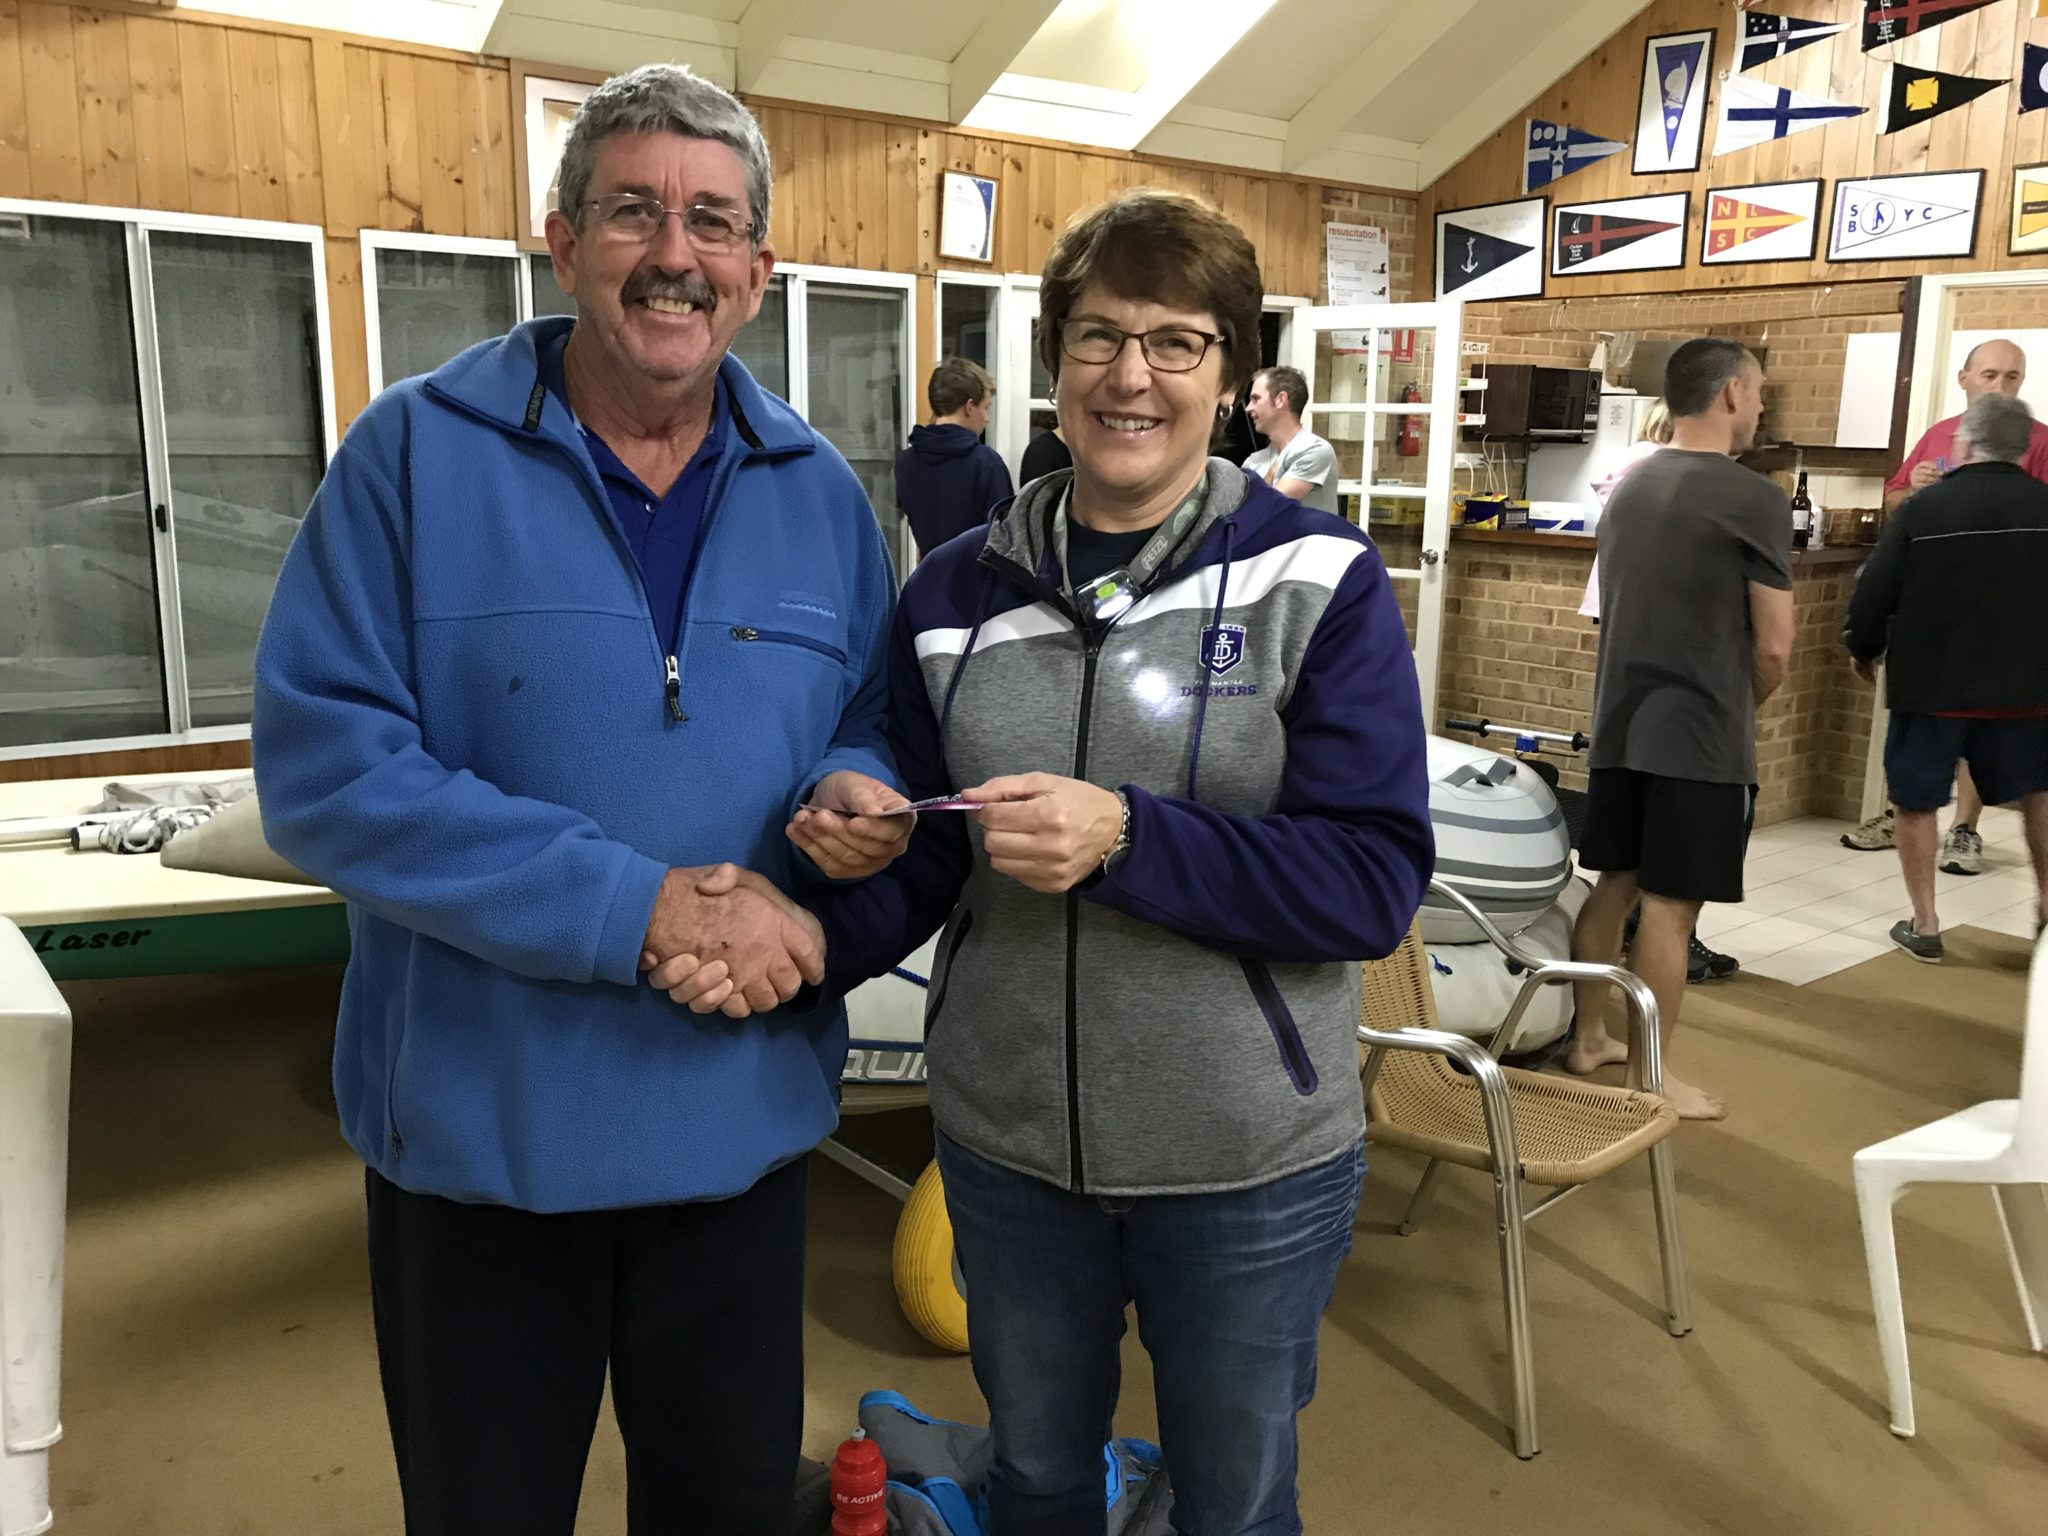 Tues 6th Spetember 2017 : Tonights photo shows club Treasurer Simone Burge presenting Dave Griifithswith a movie voucher.